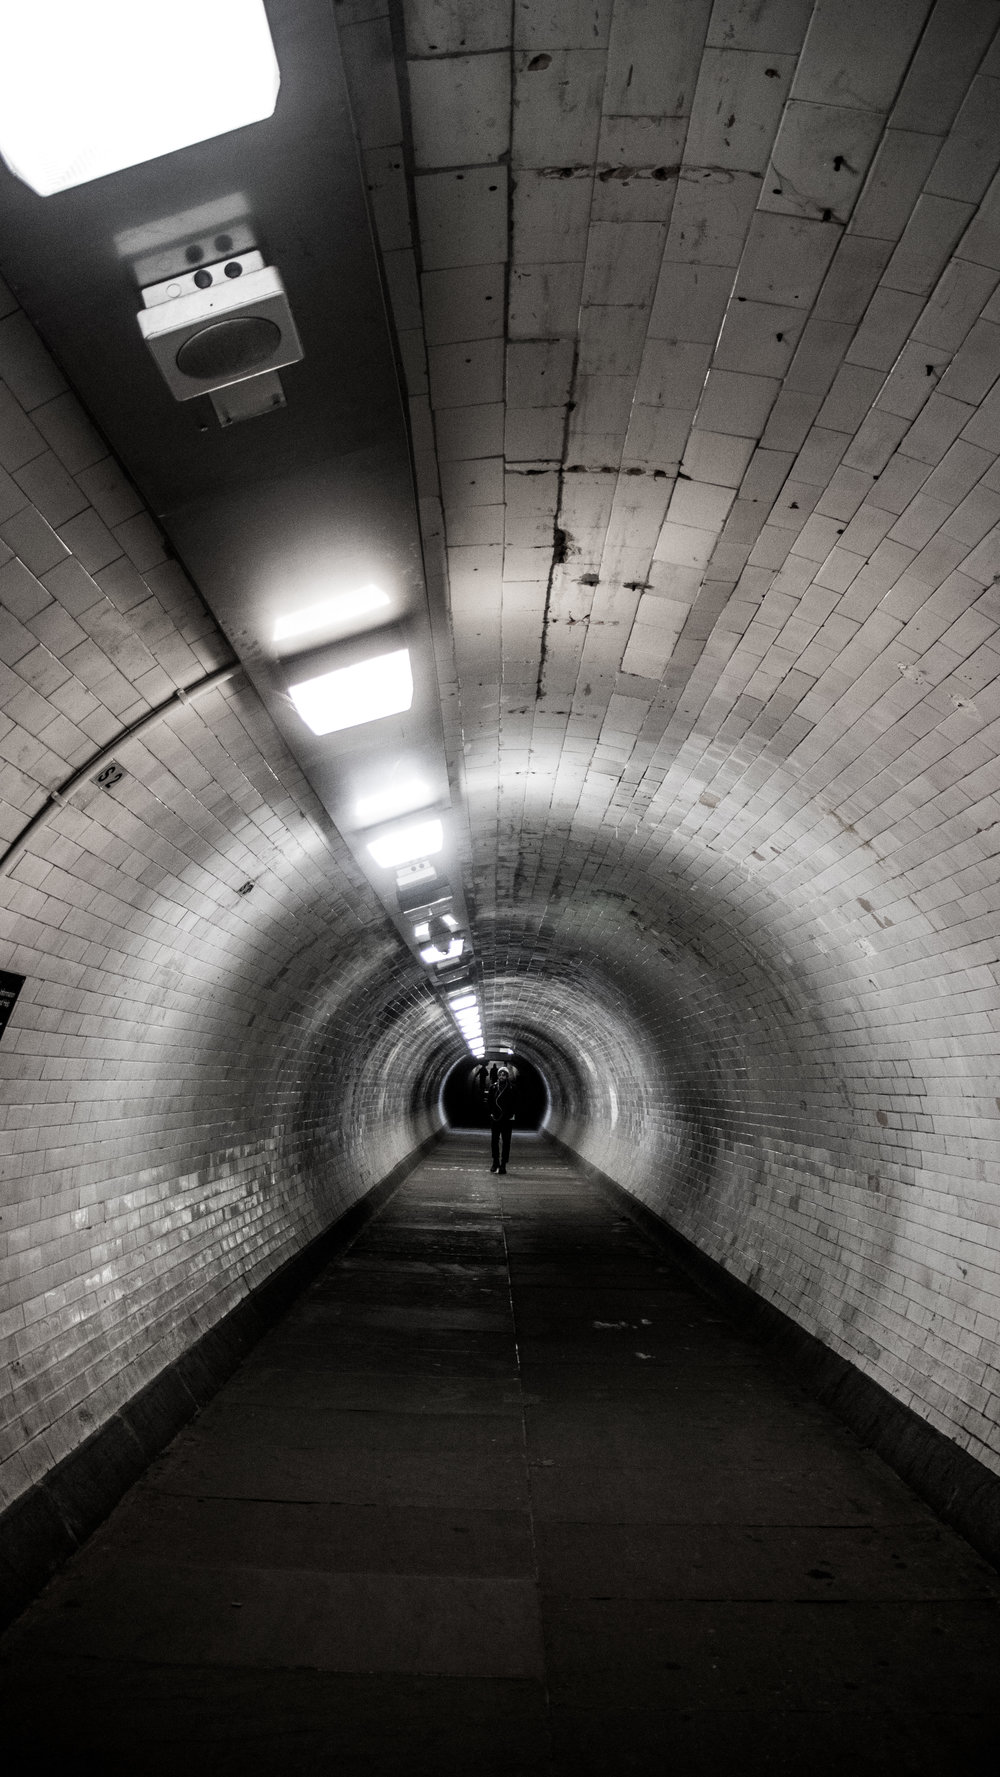 The greenwich tunnel